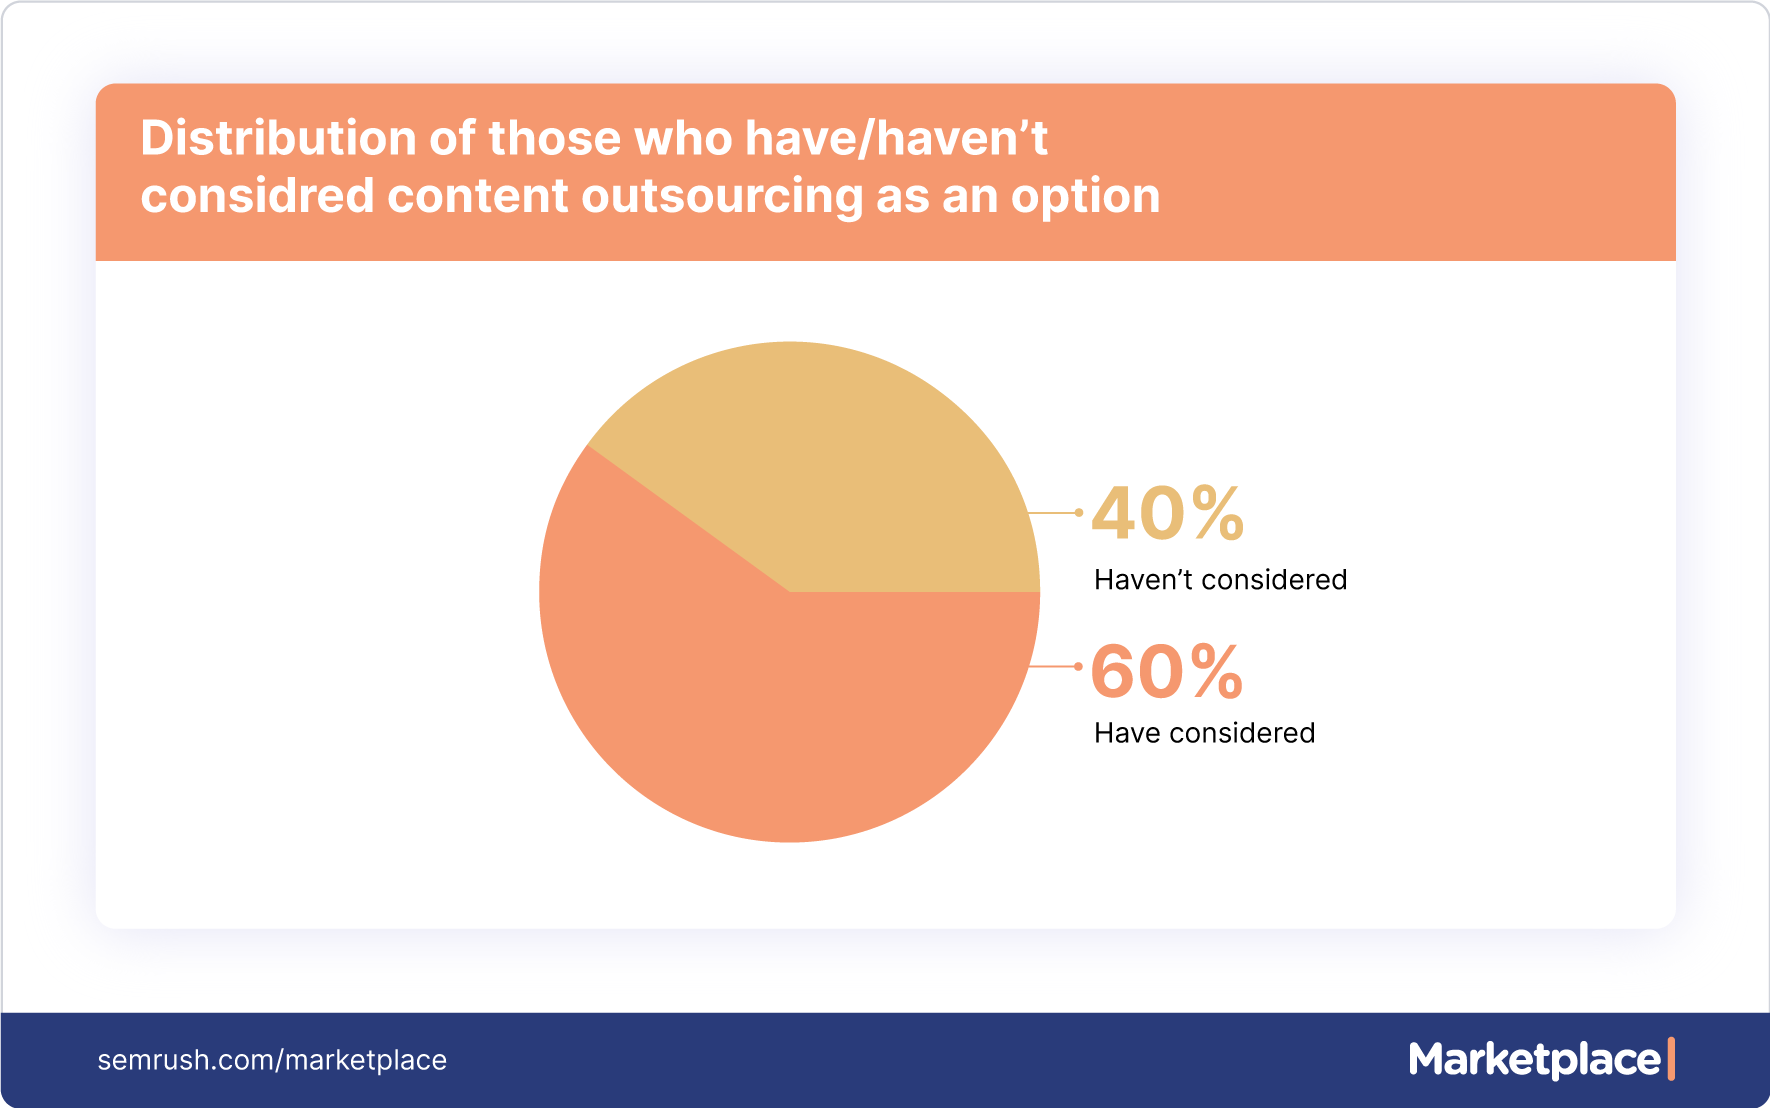 considering content outsourcing